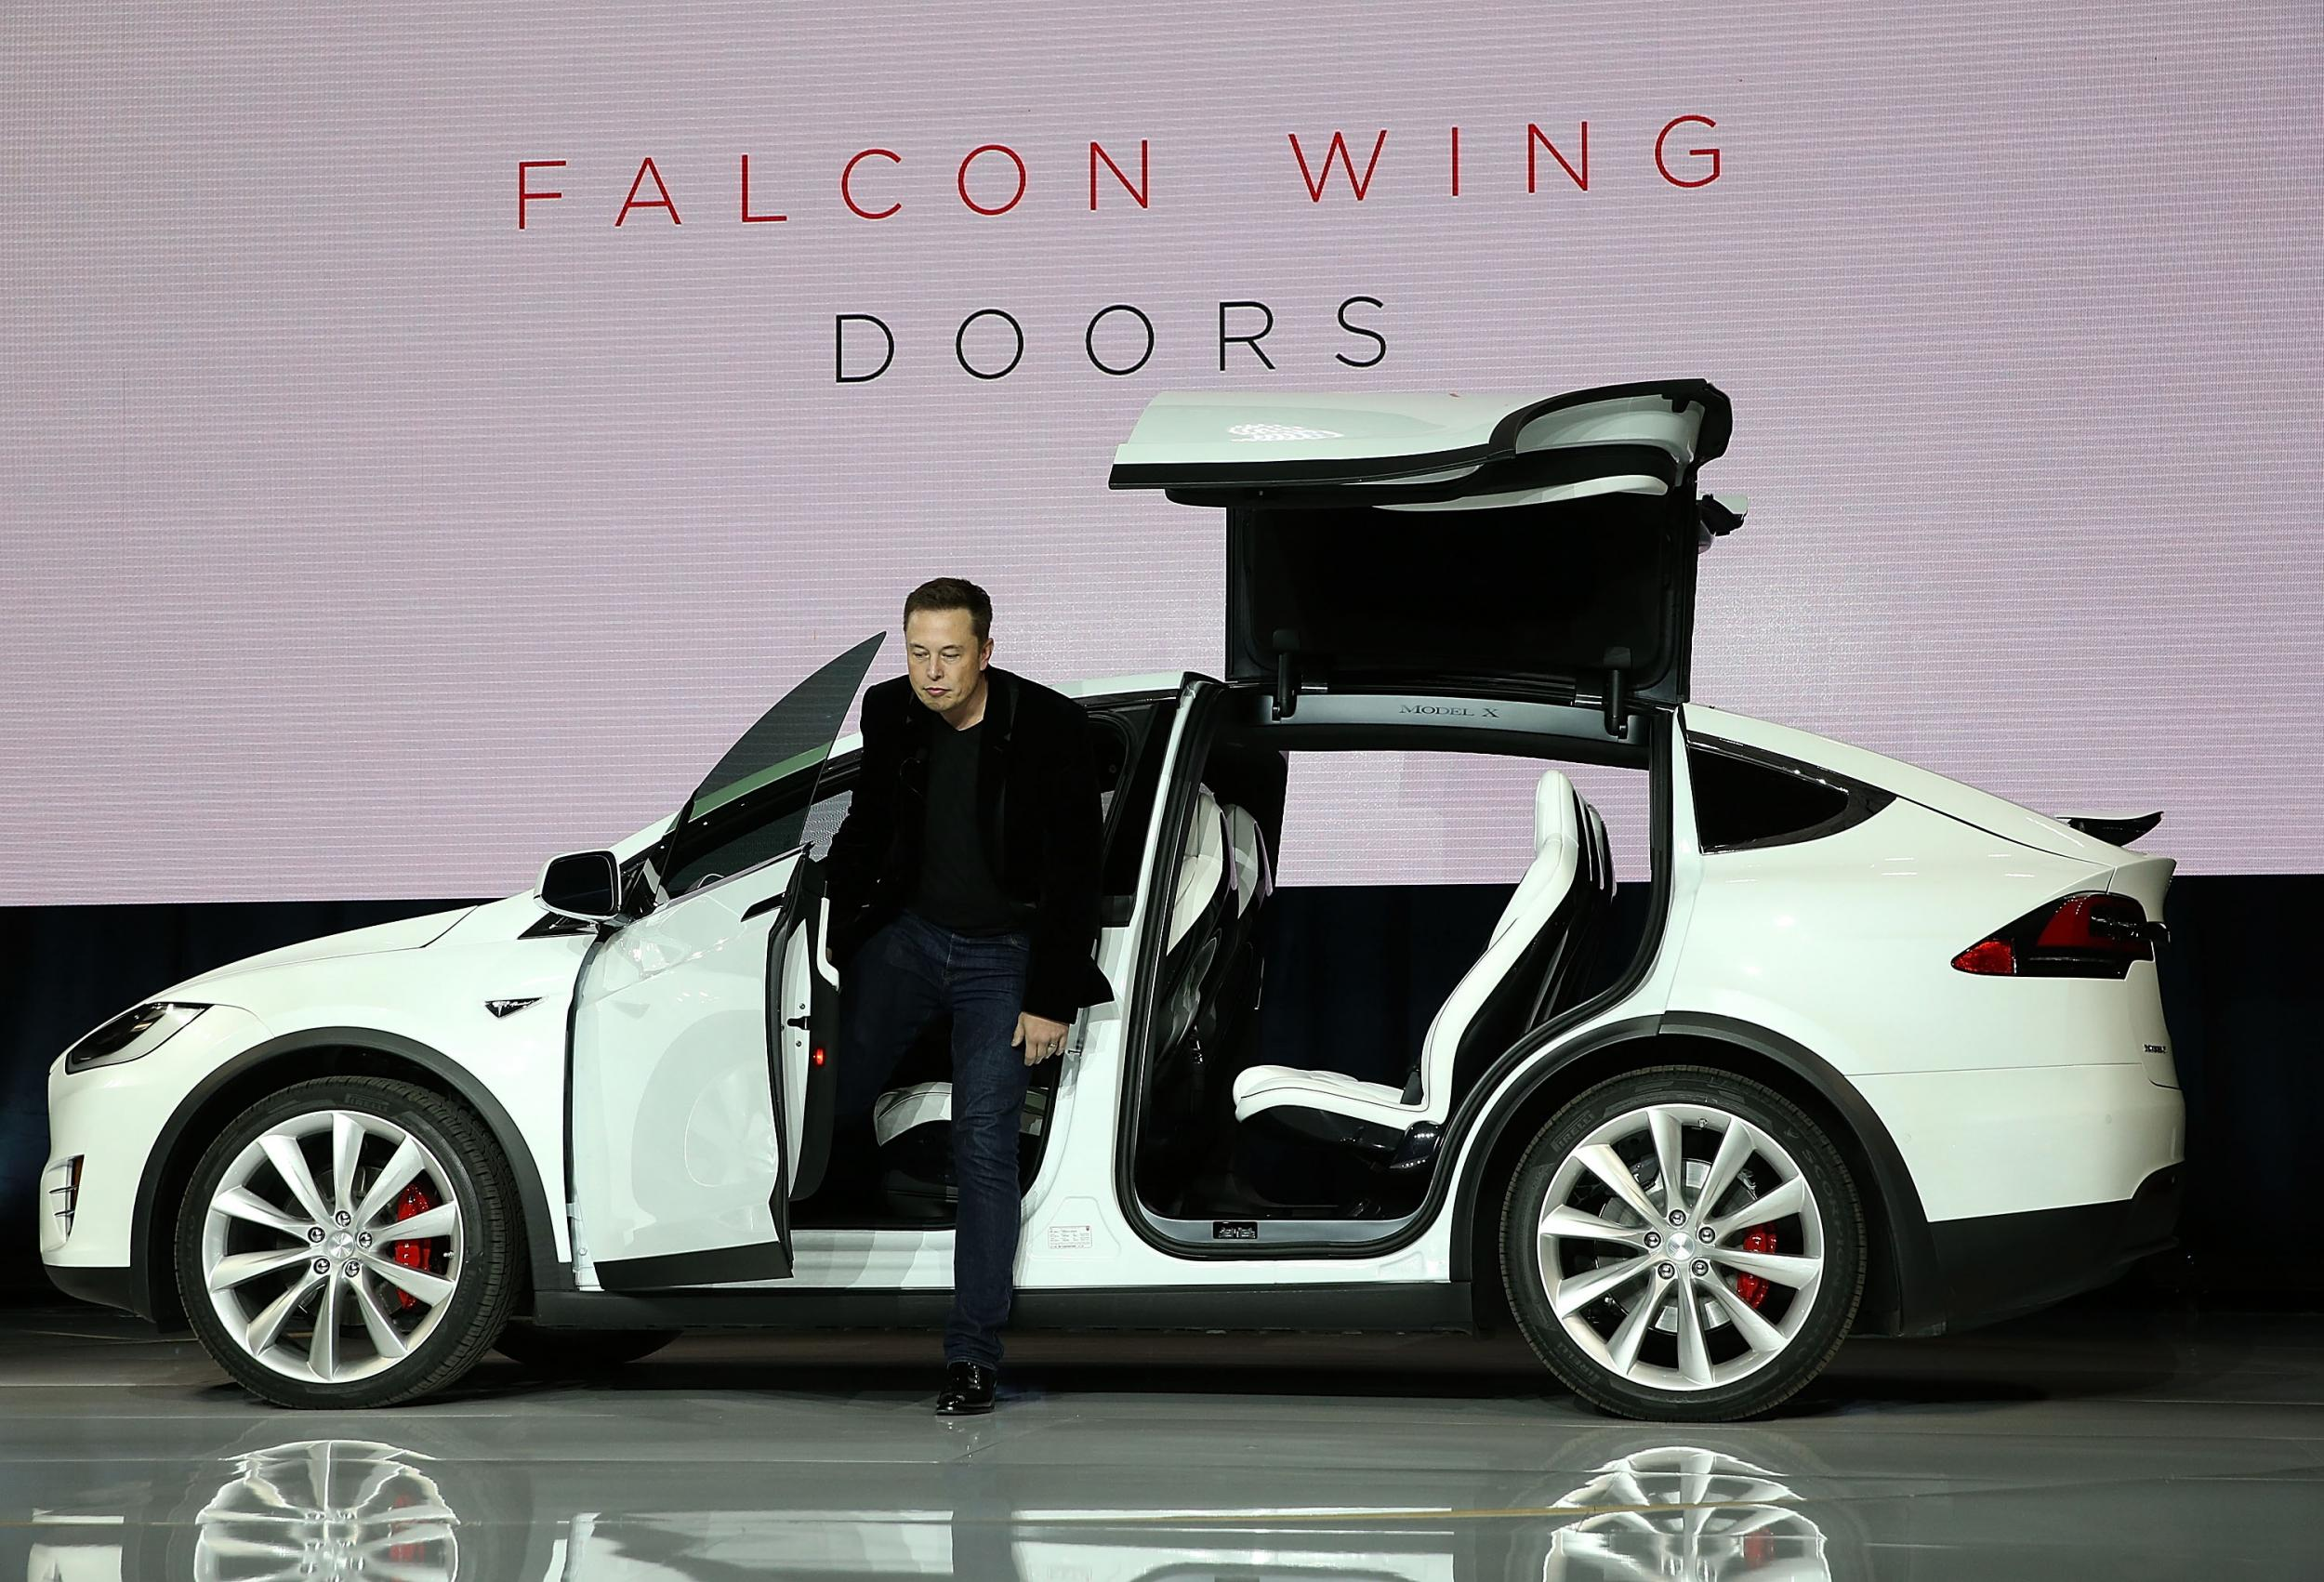 Tesla X Christmas 2020 Tesla Model X owners complain of doors that won't open and other